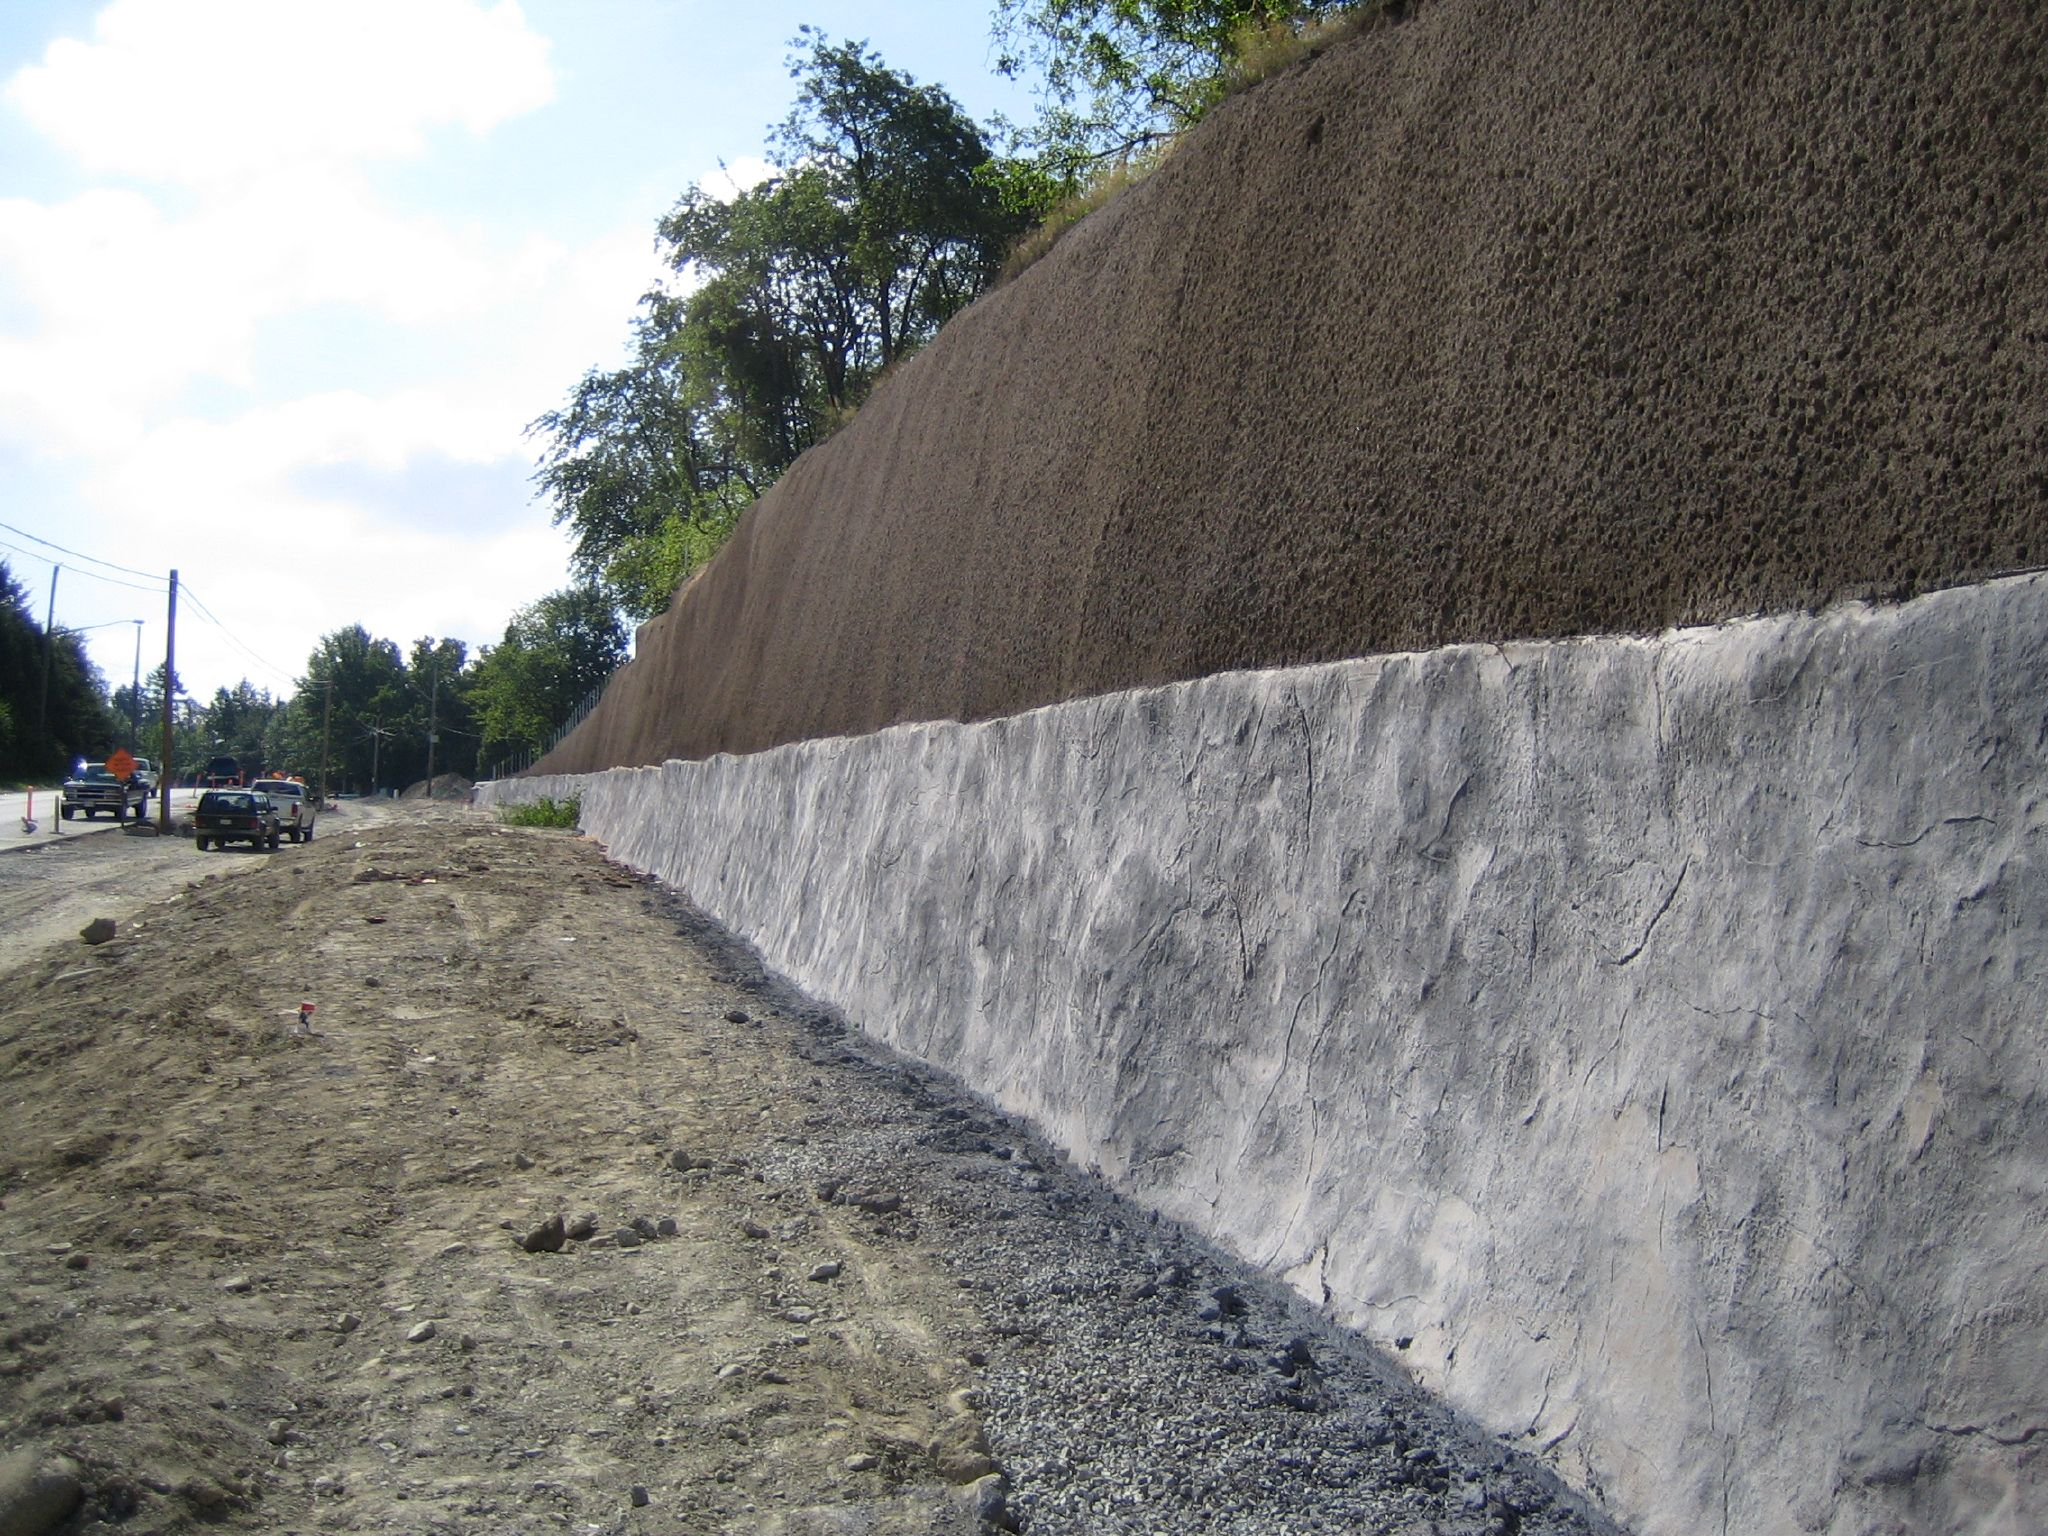 retaining-wall-along-road